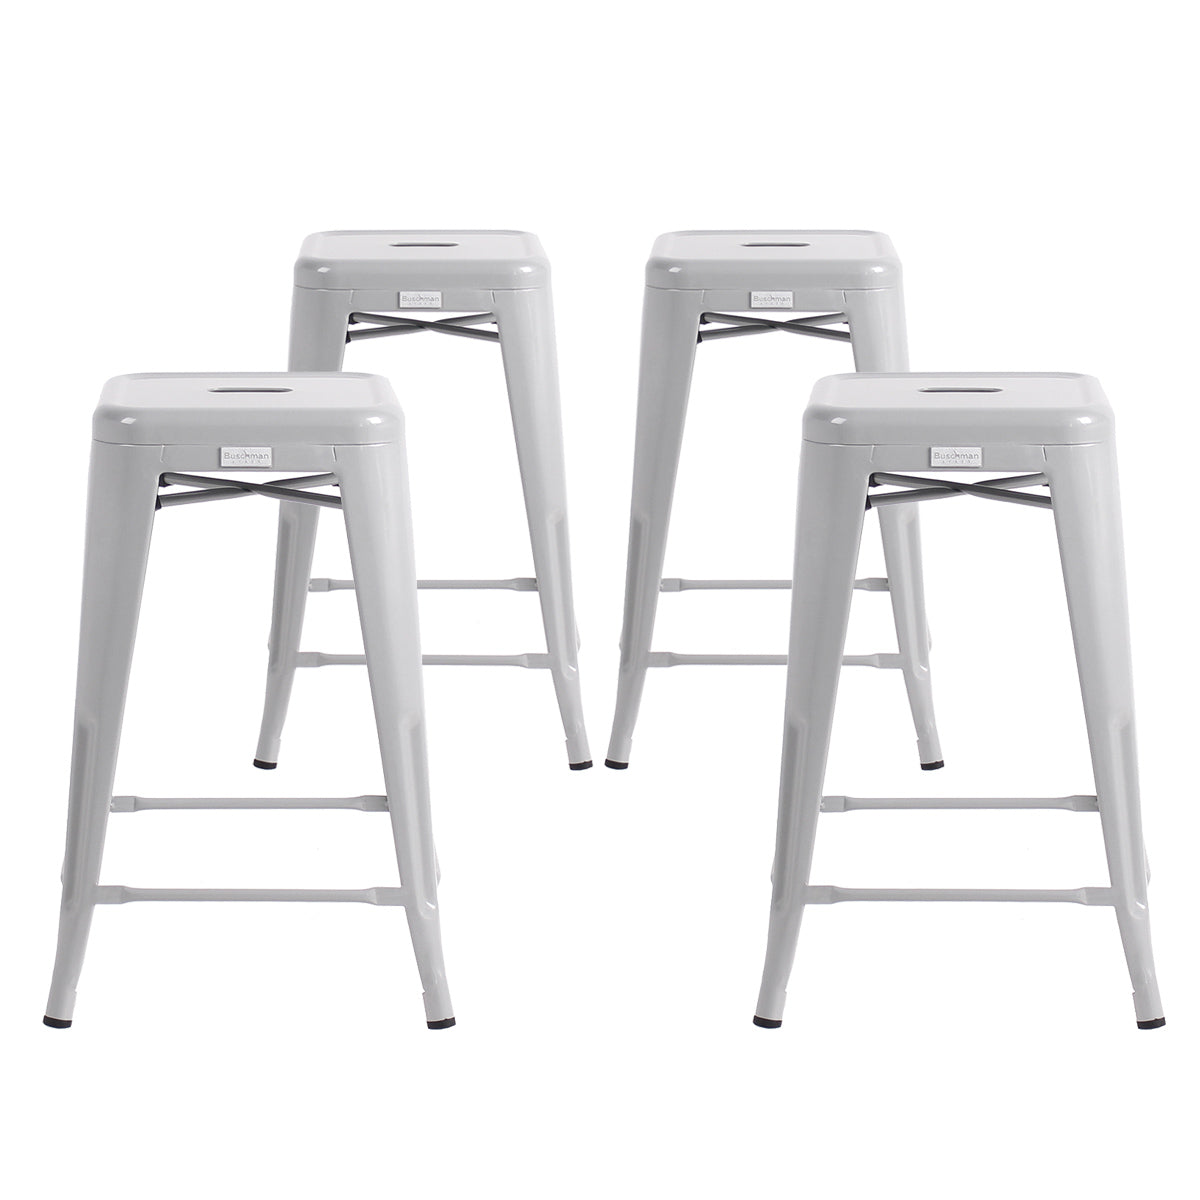 "Buschman Metal Bar Stools 24"" Counter Height, Indoor/Outdoor and Stackable, Set of 4 (Regular Grey)"